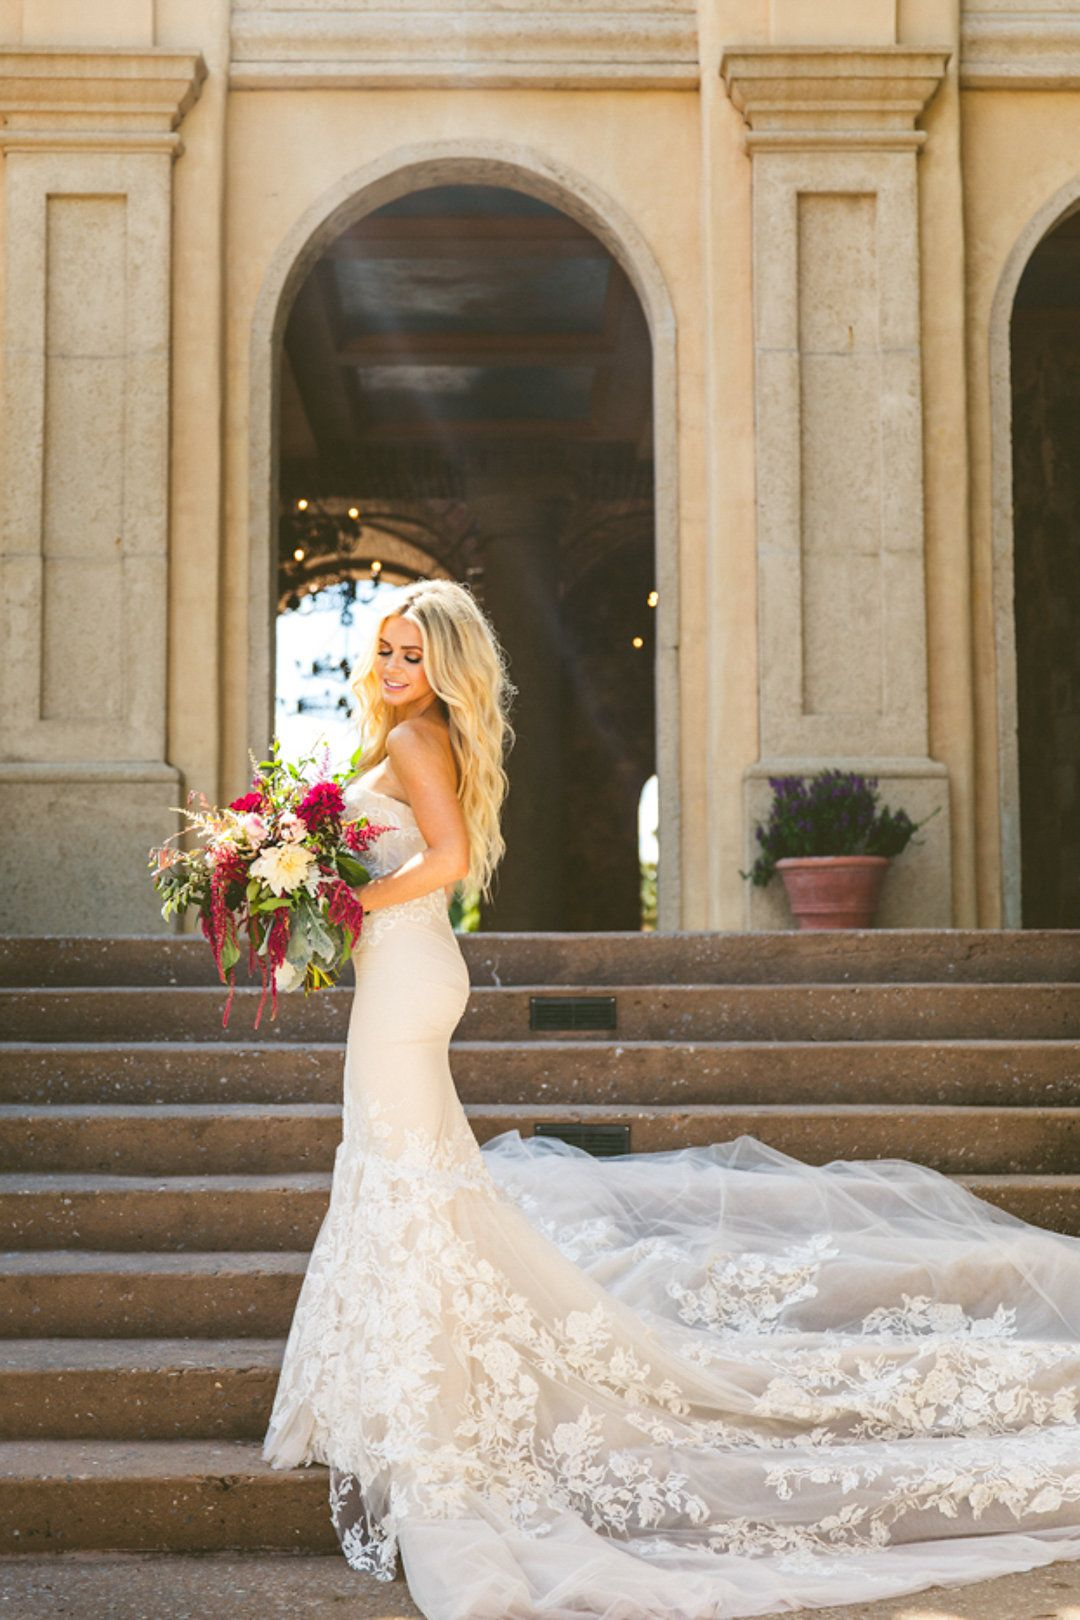 Glam Wedding Dress From Blush Bridal Sarasota Glam Wedding Dress